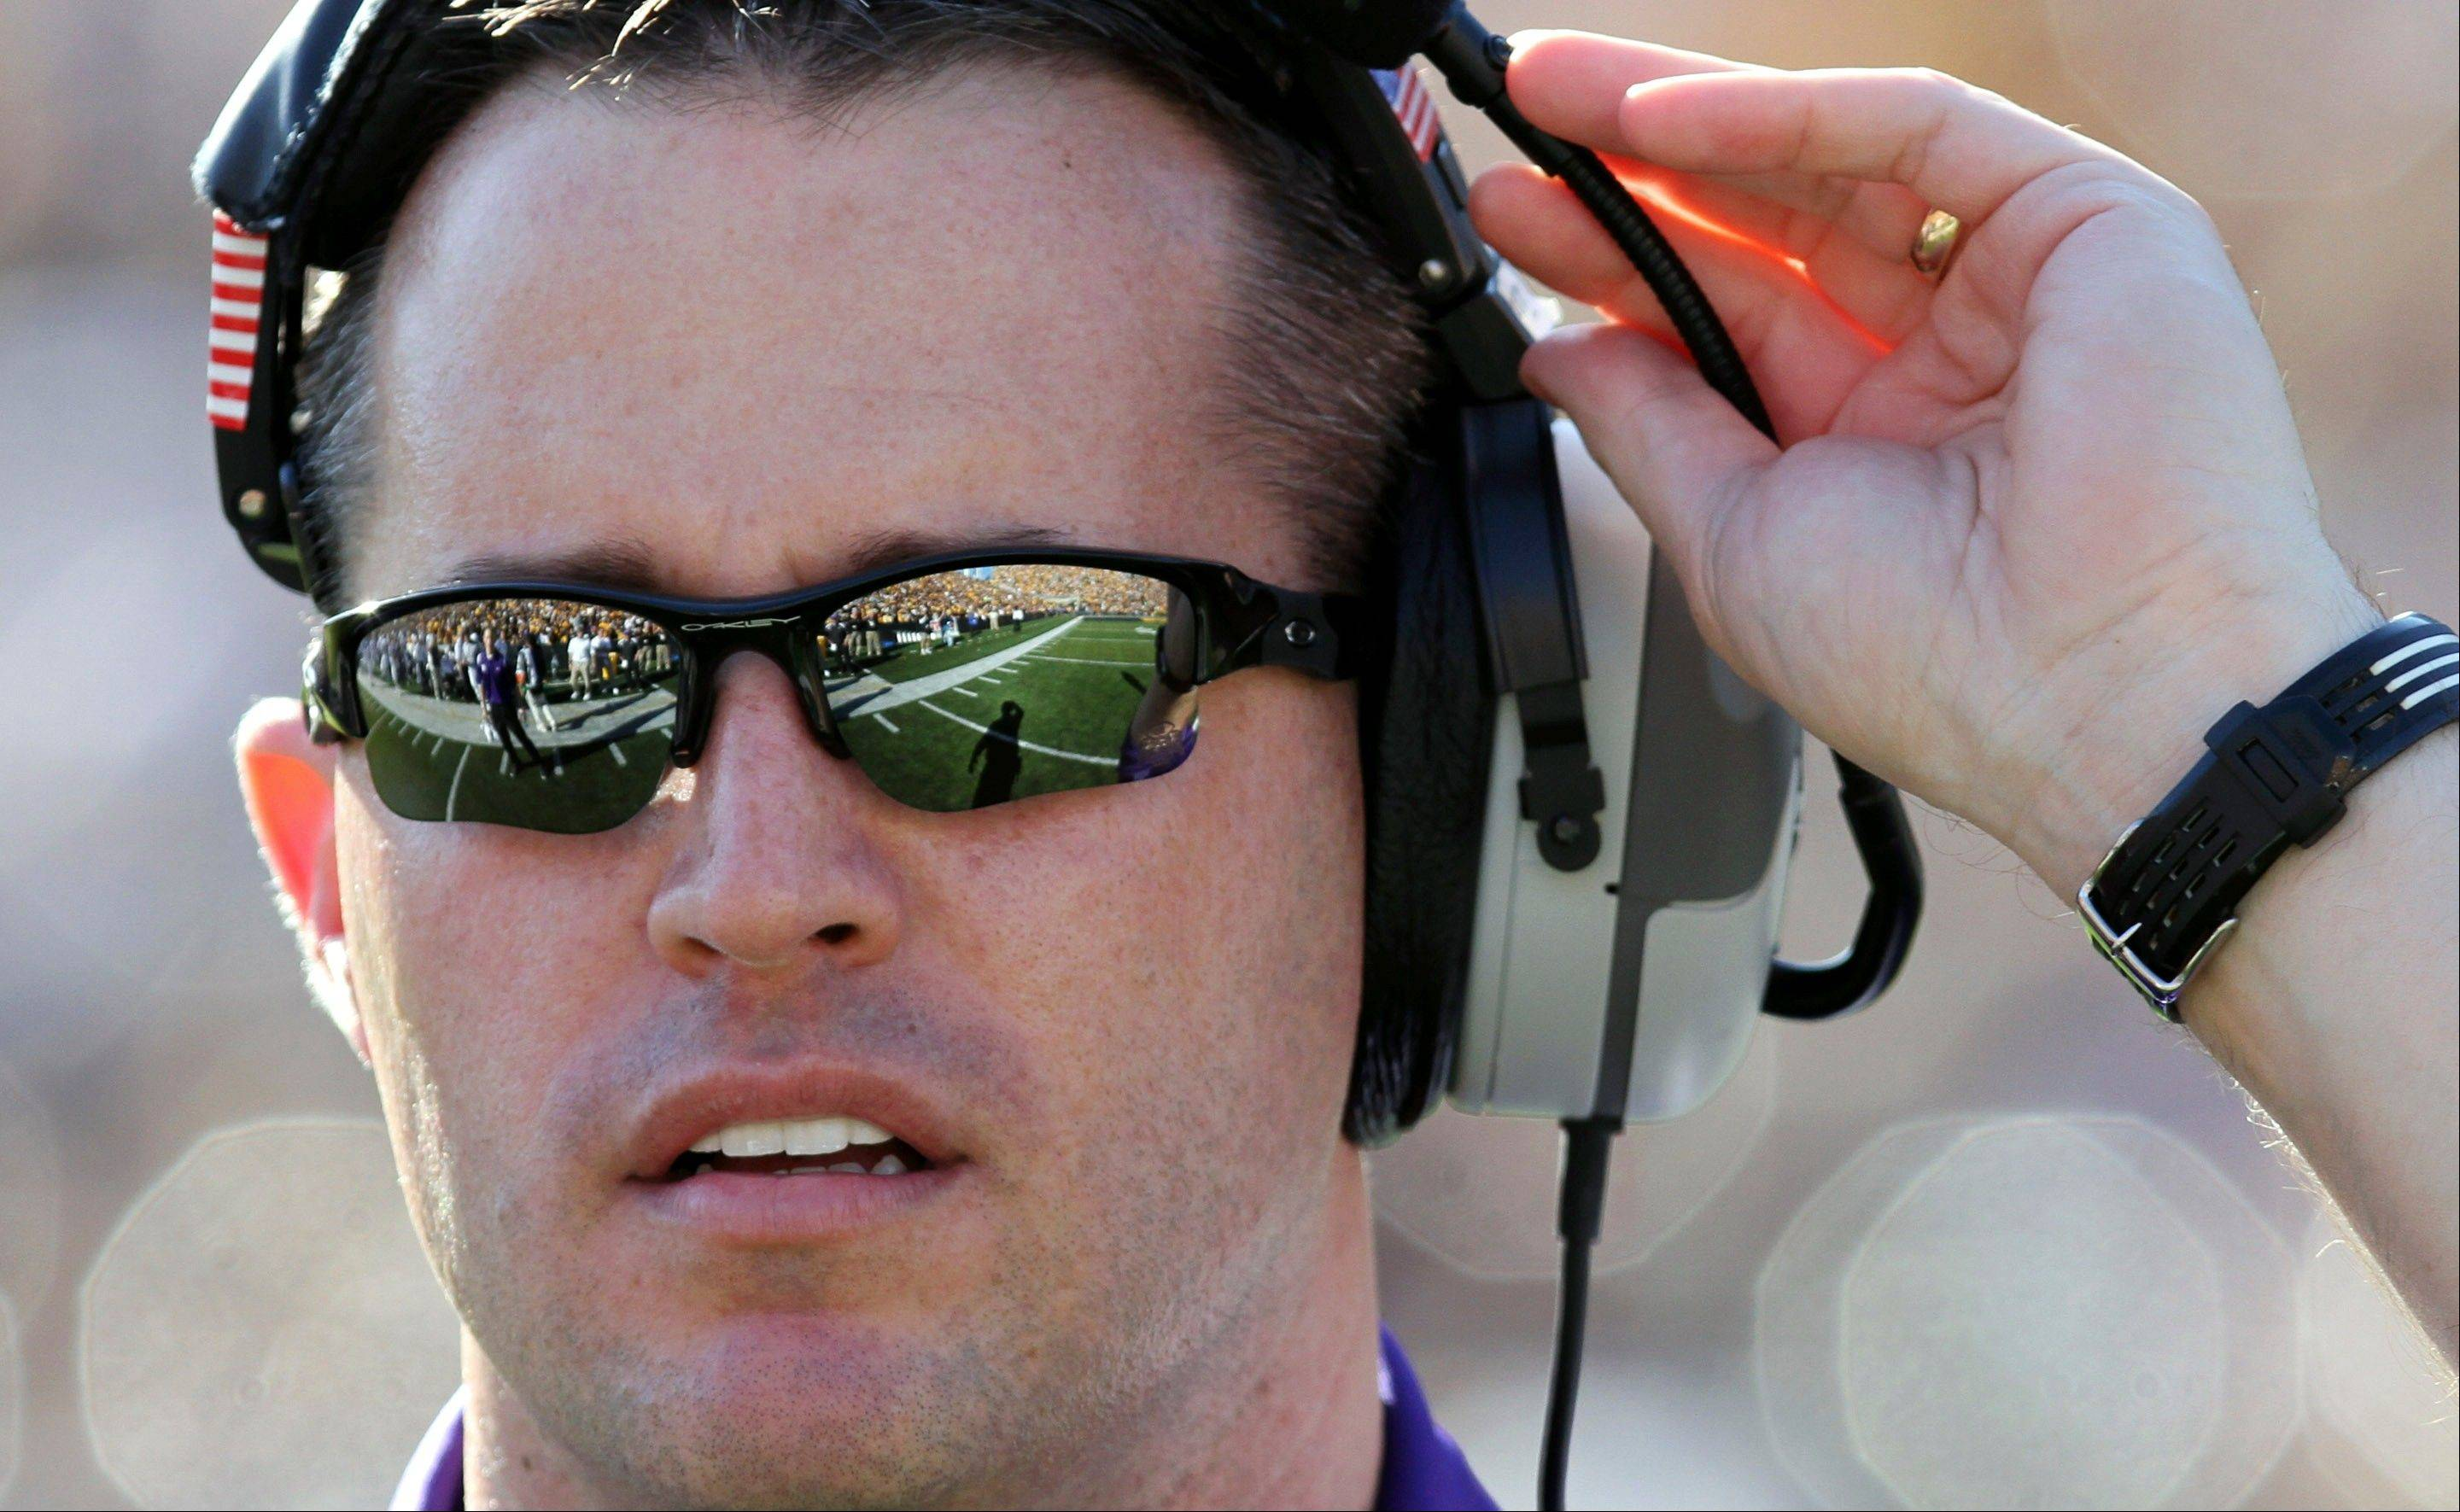 Northwestern and coach Pat Fitzgerald will be the last stop on a 12-campus tour by the Big Ten Network crew as it prepares preview shows on each team for the 2011 football season. The crew will visit the Fighting Illini on Aug. 13 and NU on Aug. 22.